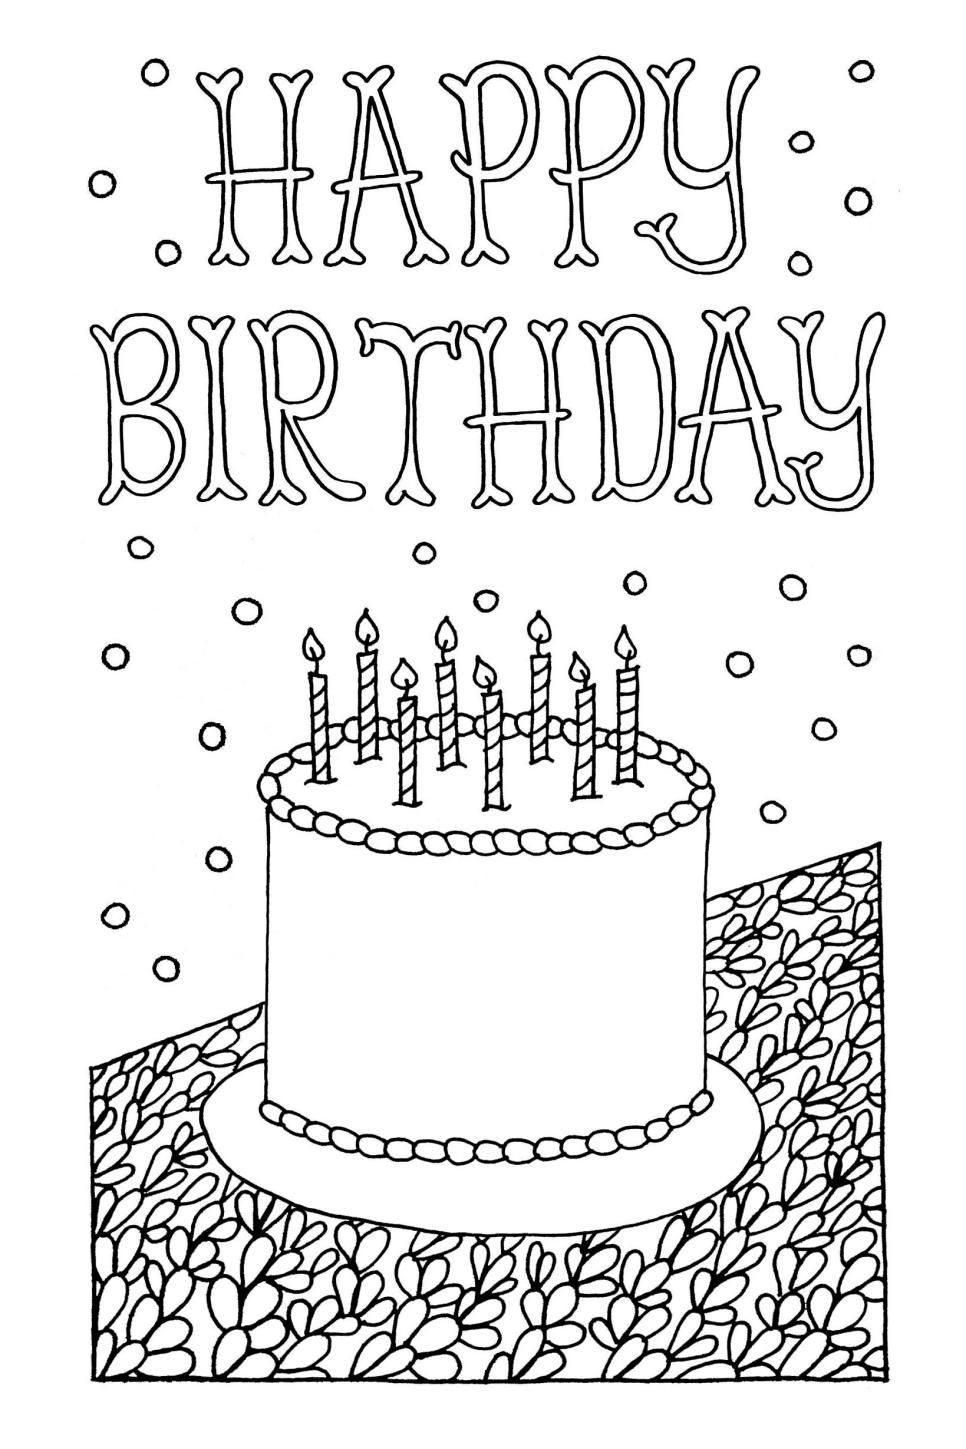 Free Downloadable Adult Coloring Greeting Cards | Diy Gifts | Happy - Free Printable Coloring Cards For Adults